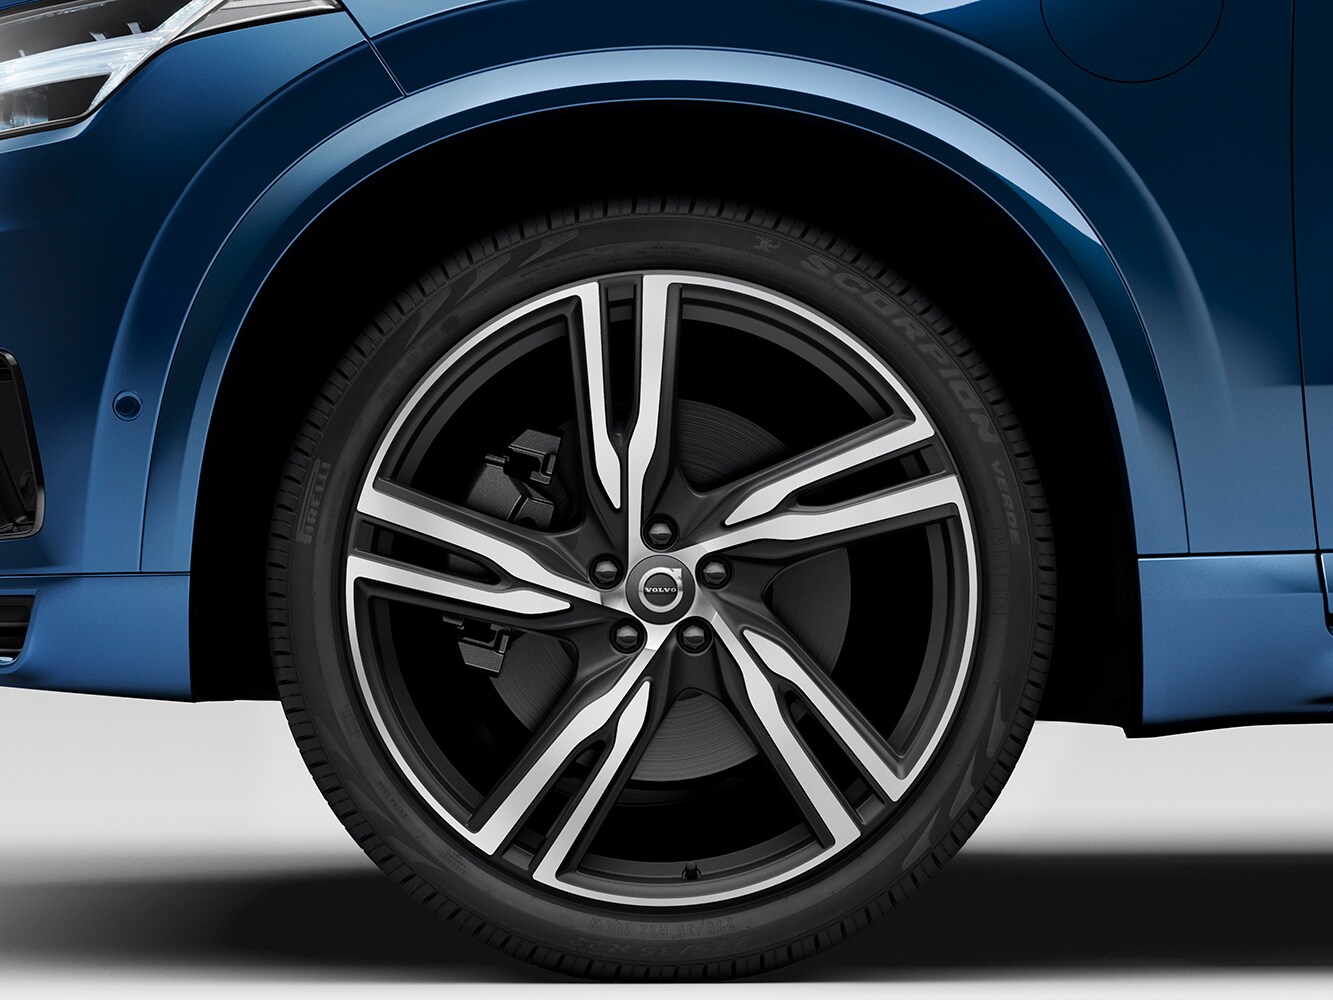 Close up of dimaond-cut alloy wheel on the Volvo XC90 R-Design